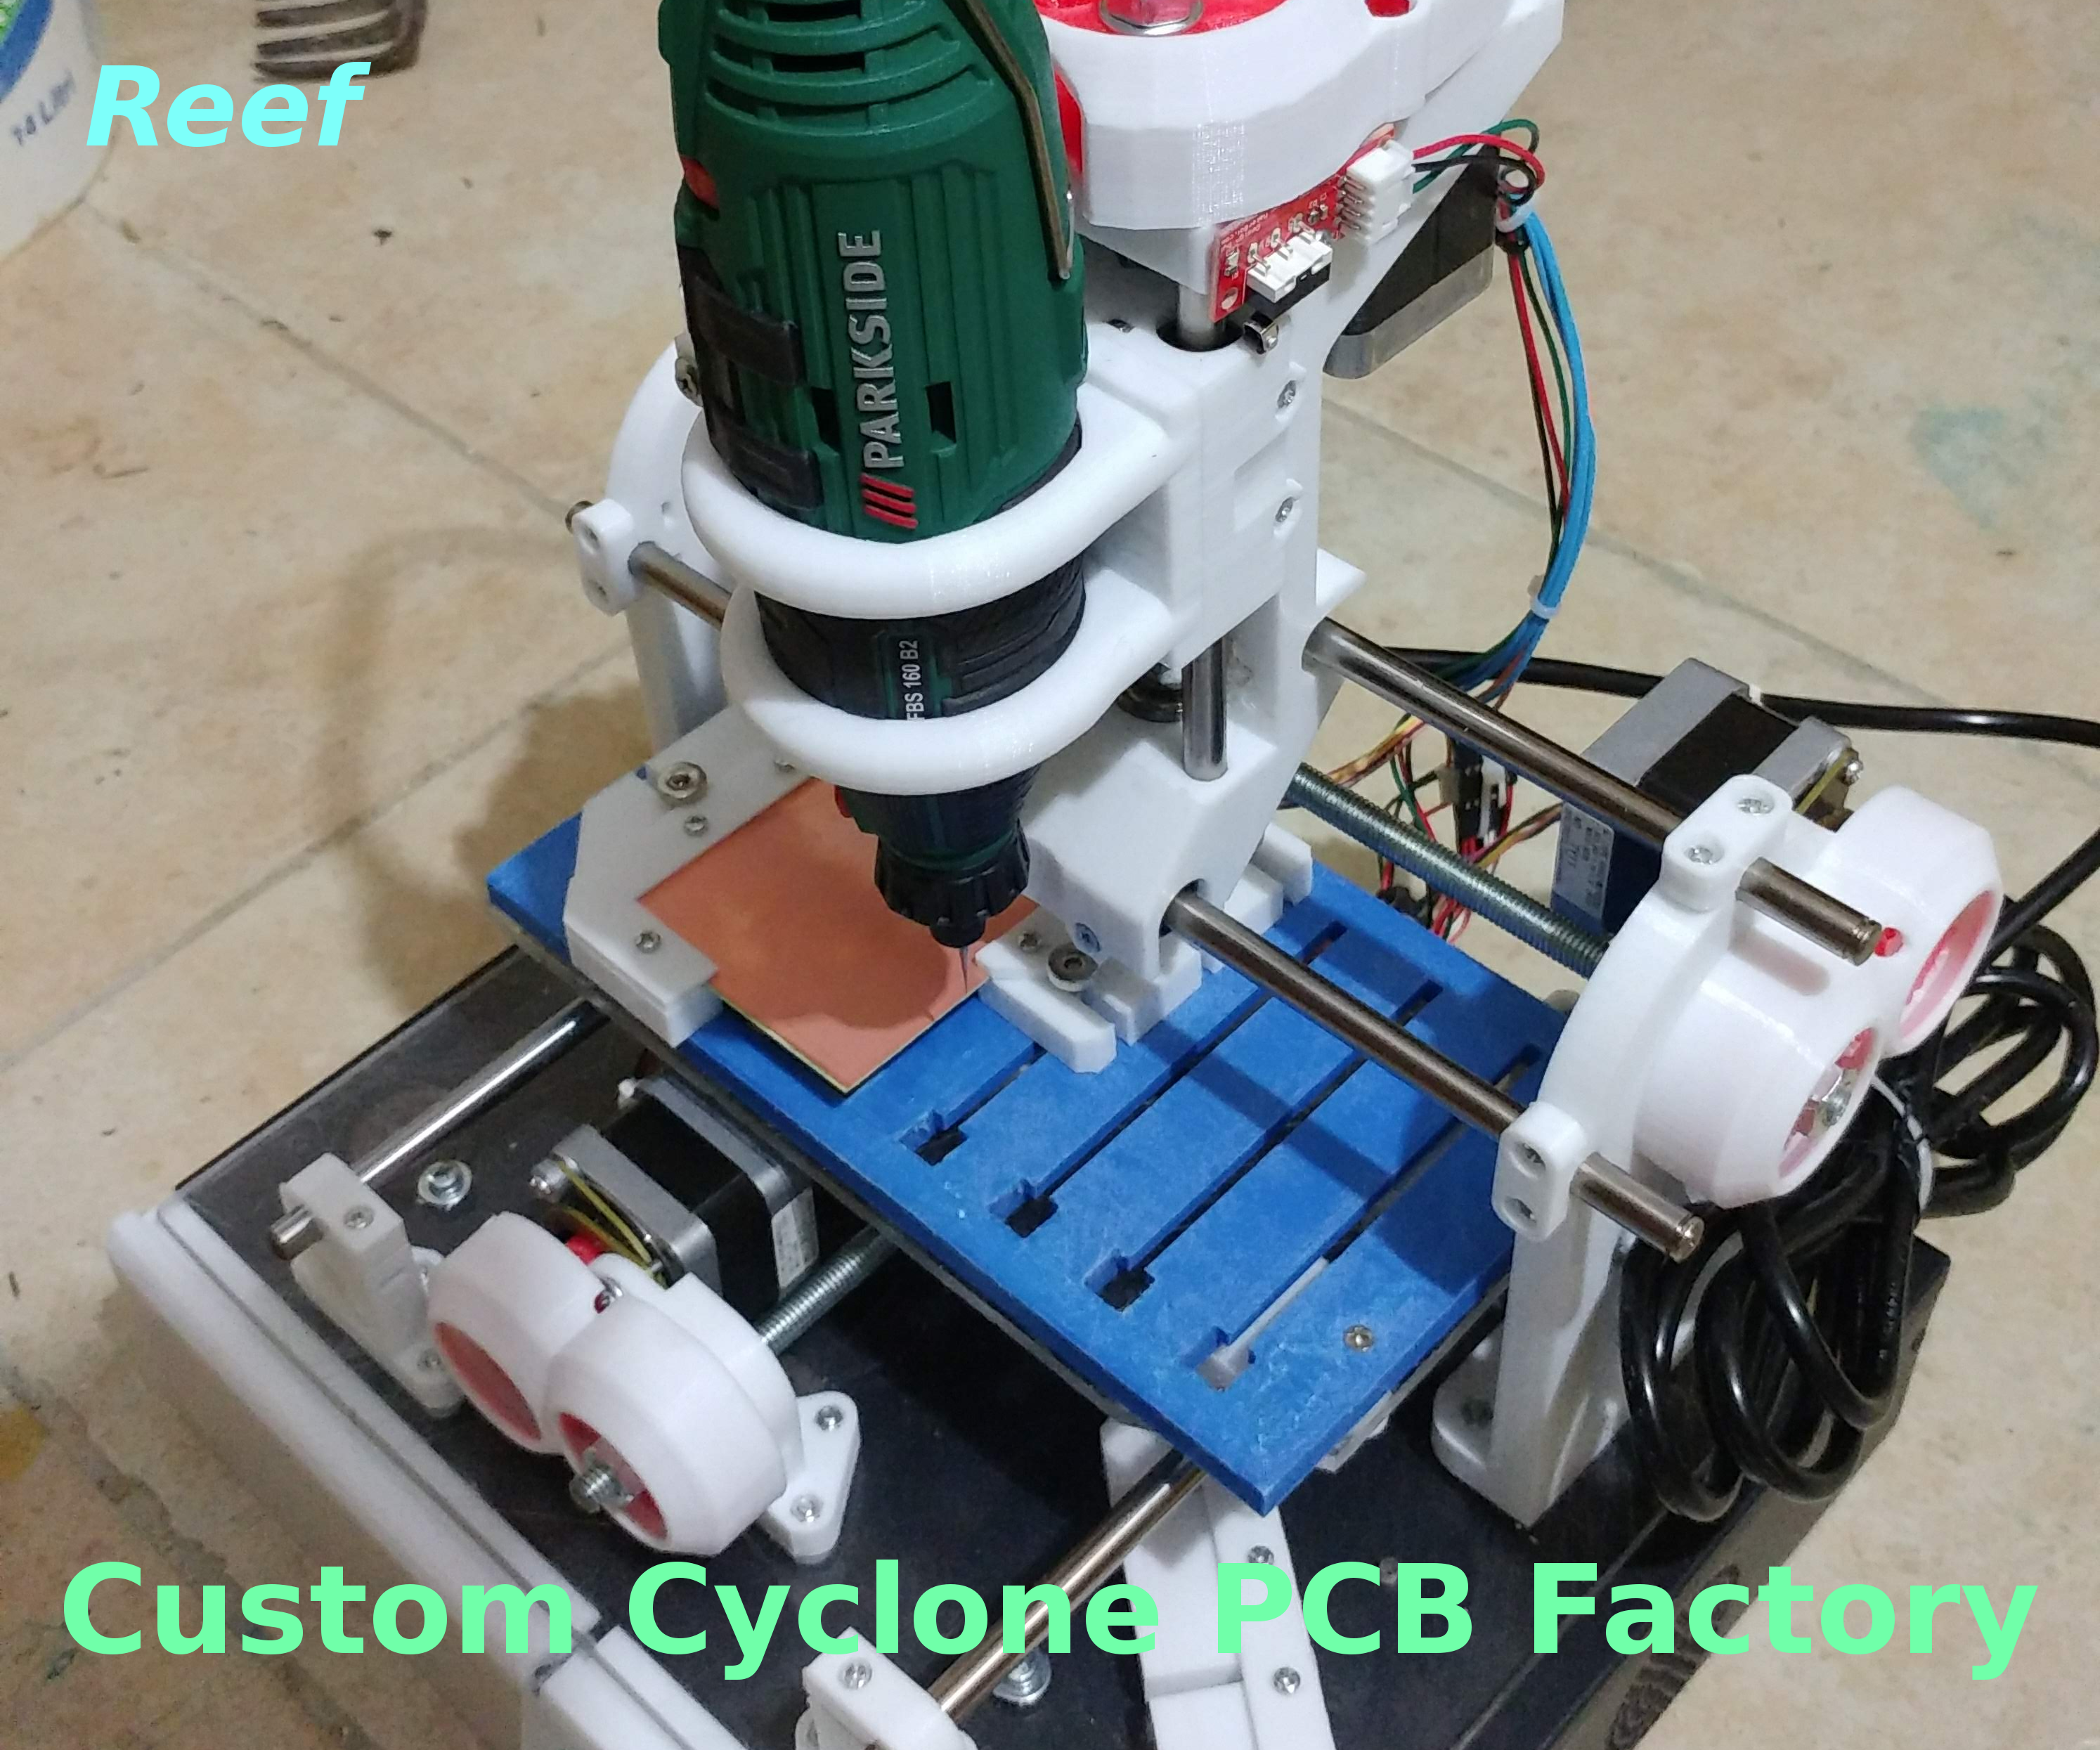 Cyclone PCB Factory, My Way, Step by Step.